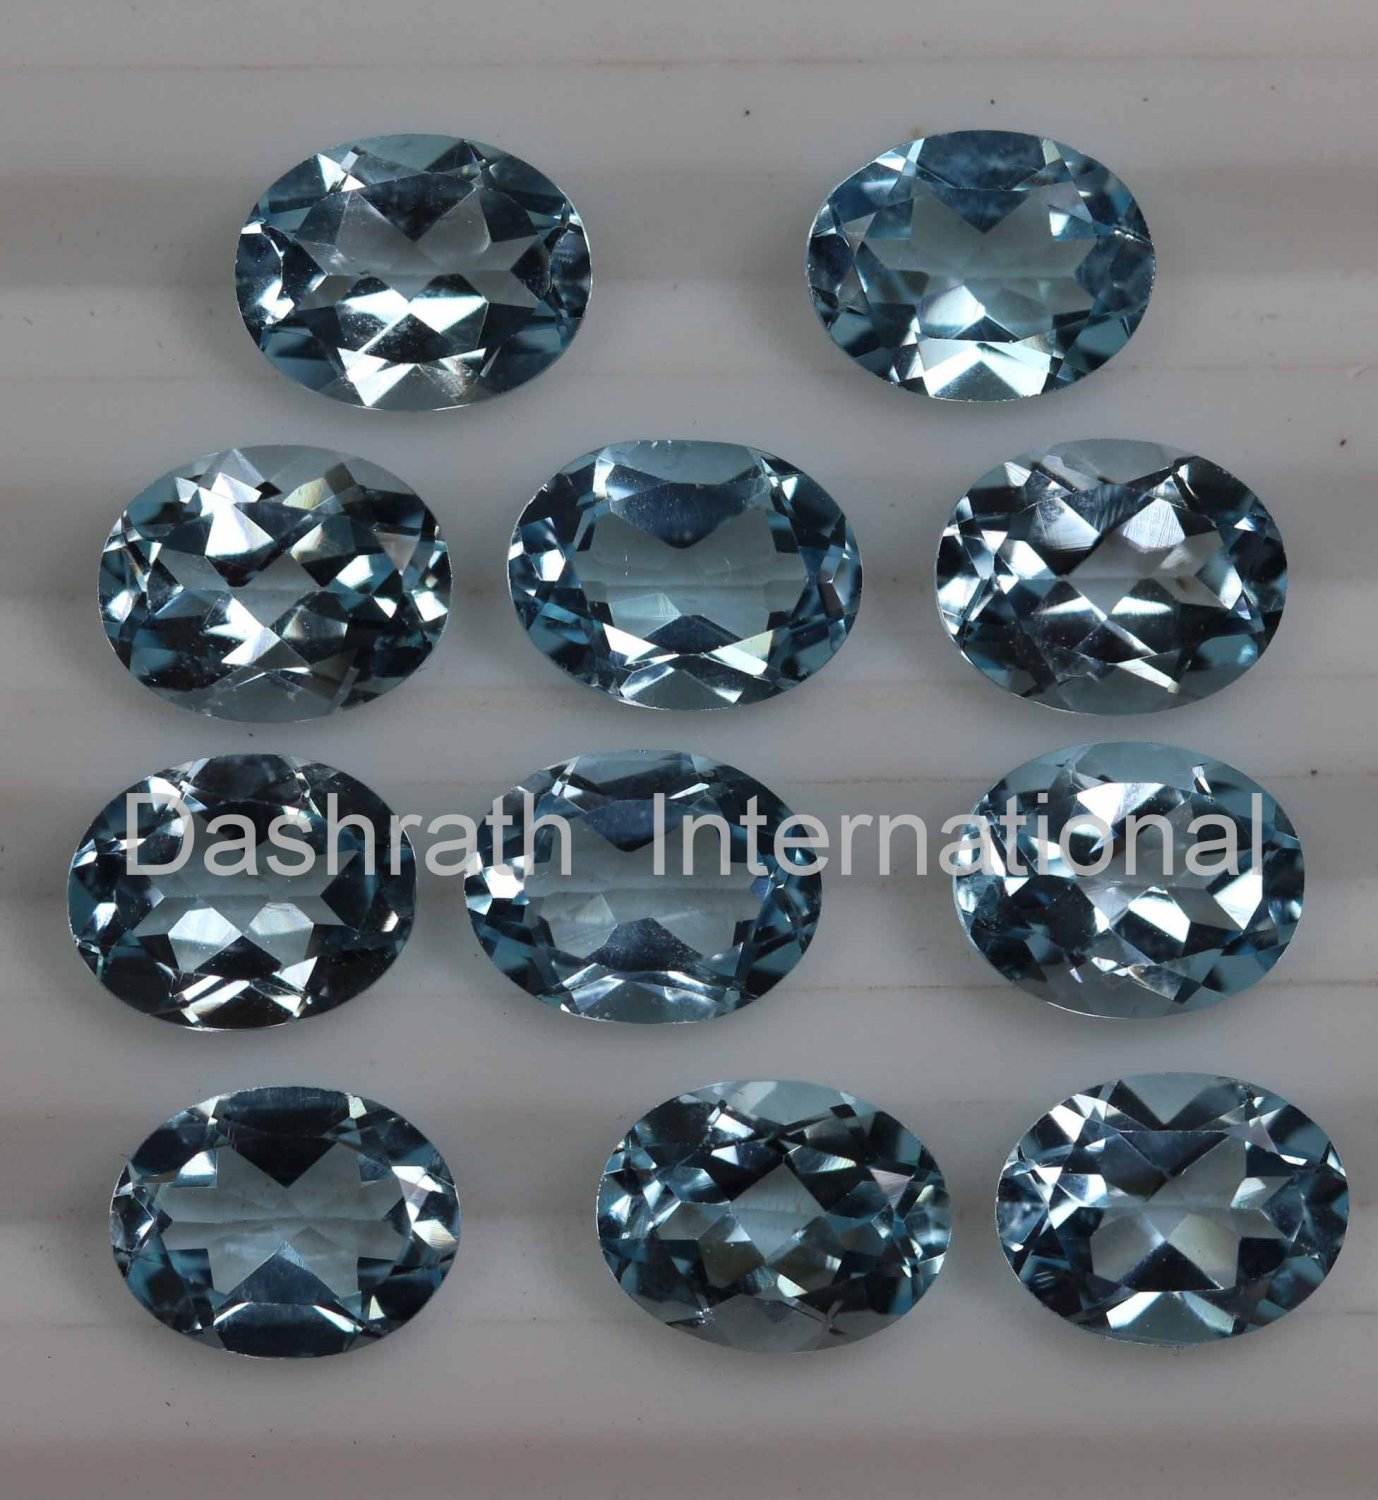 5x3mm Natural Sky Blue Topaz Faceted Cut Oval  2 Piece (1 Pair ) Top Quality Loose Gemstone